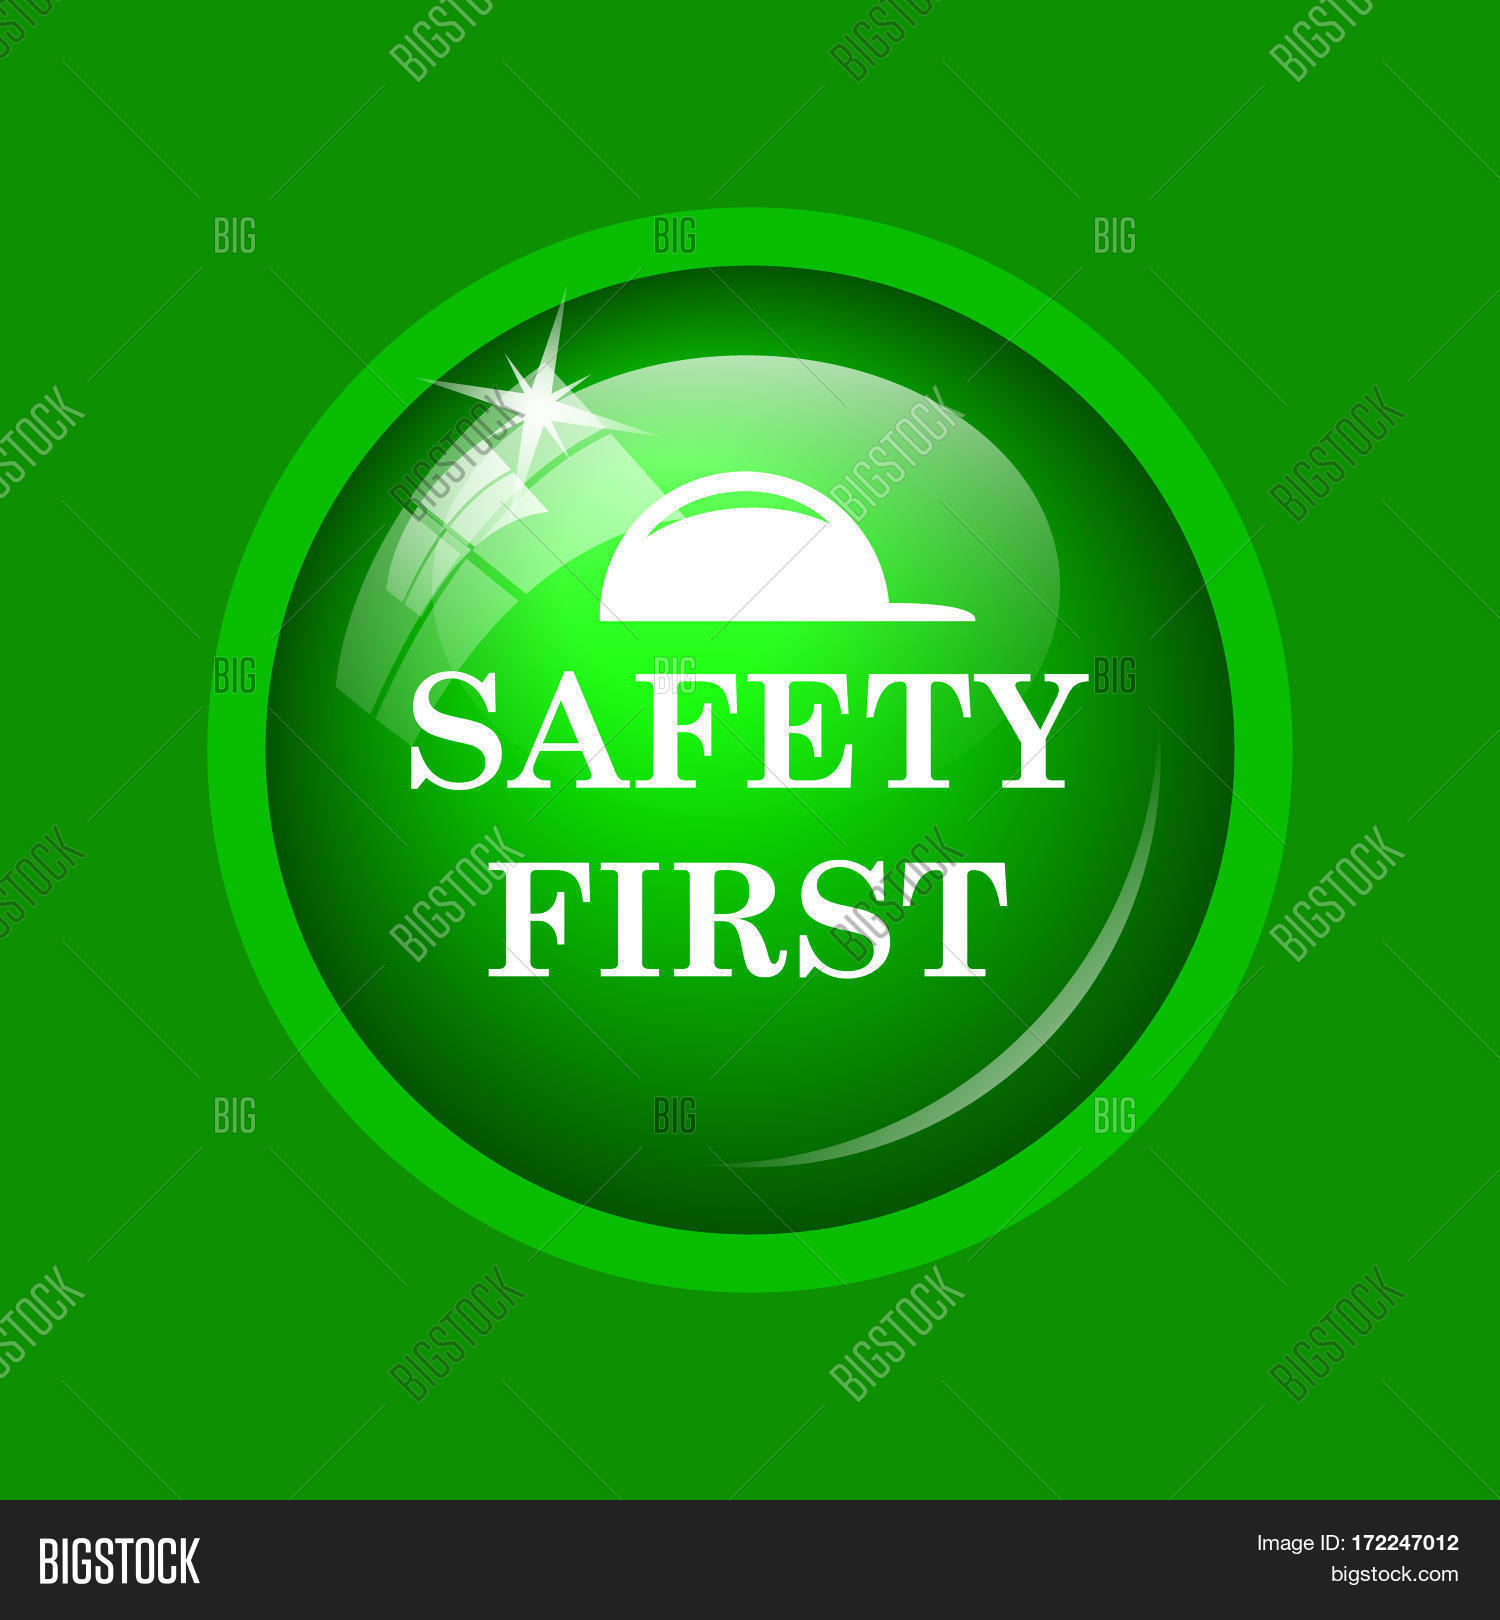 Safety First Icon Image Photo Free Trial Bigstock